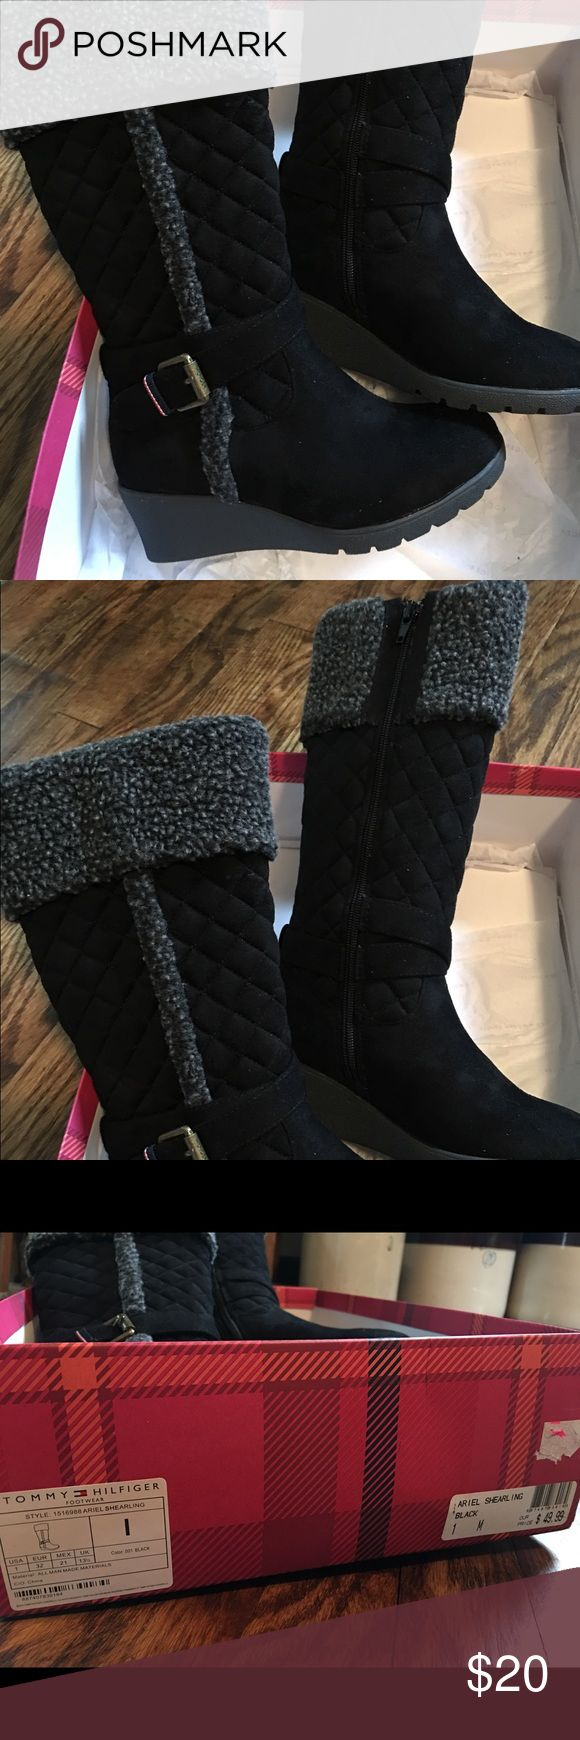 Tommy Hilfiger youth boots Brand new shearling fur boots. Youth size. Slightly wedged heel. Smoke and pet free Tommy Hilfiger Shoes Boots